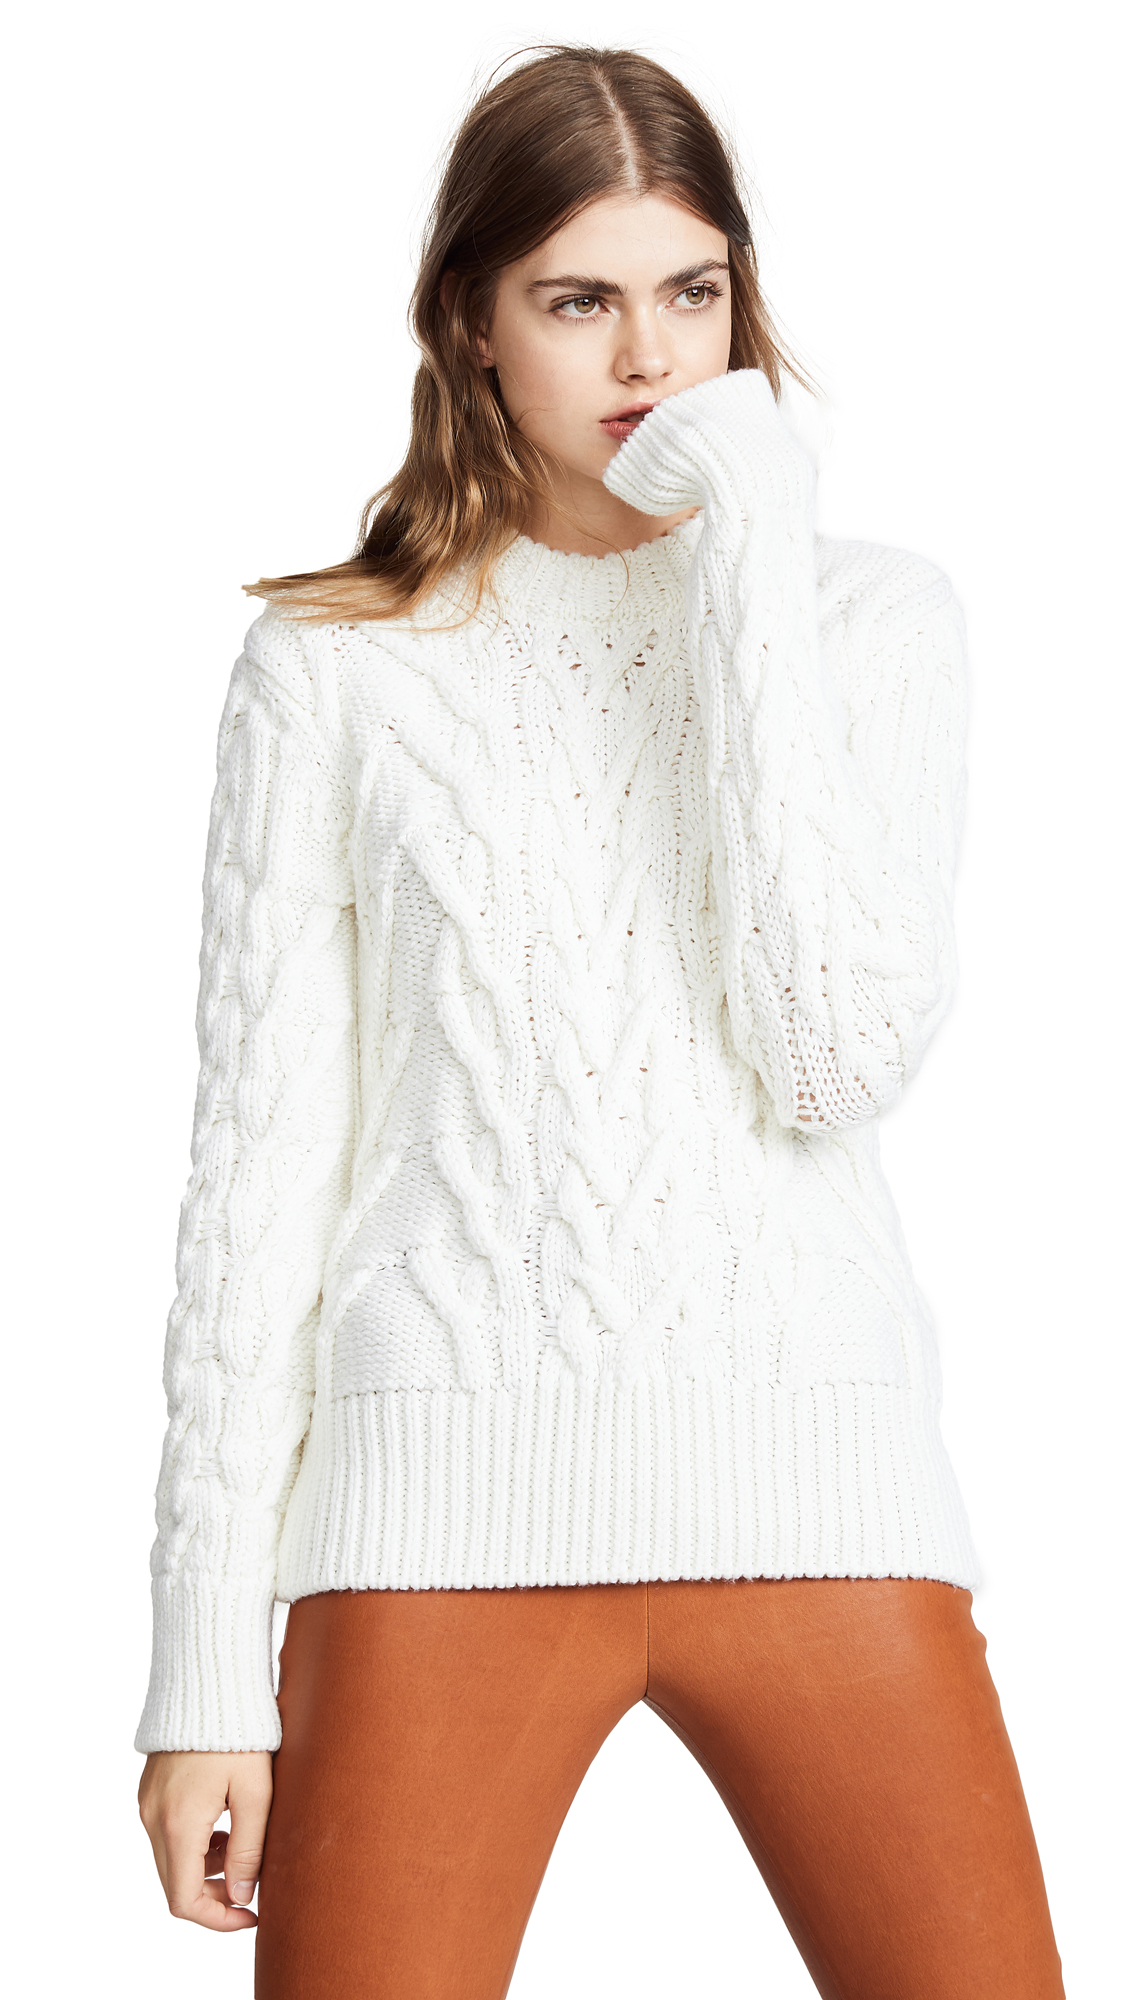 Nina Ricci Cable Knit Sweater - White